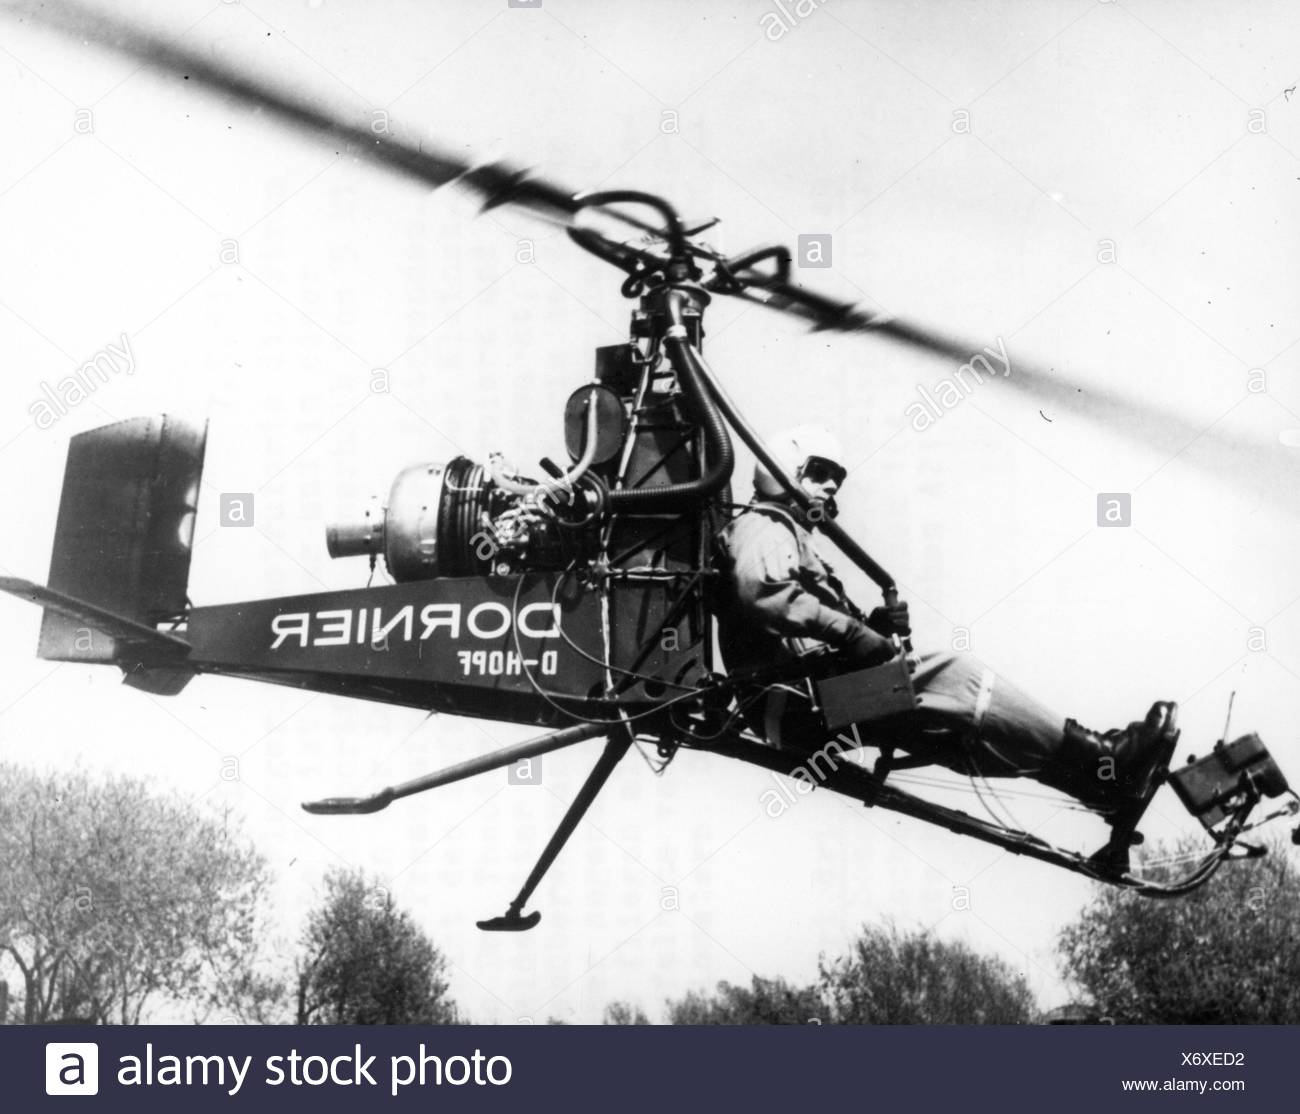 transport / transportation, aviation, helicopter, Dornier Do 32, collapsible helicopter for liason purposes, show, 7.5.1963, cold-cycle rotor helicopter, collapsible, foldable, West Germany, Western Germany, technics, technology, technologies, rotary wing aircraft, helicopters, airplane pilot, airplane pilots, flying, flight, flights, demonstration, demo, demonstrations, demos, industry, industries, one-man helicopter, 1960s, 60s, 20th century, people, one man, male, transport, transportation, show, presentation, performance, shows, presentations, performances,, Additional-Rights-Clearences-NA - Stock Image